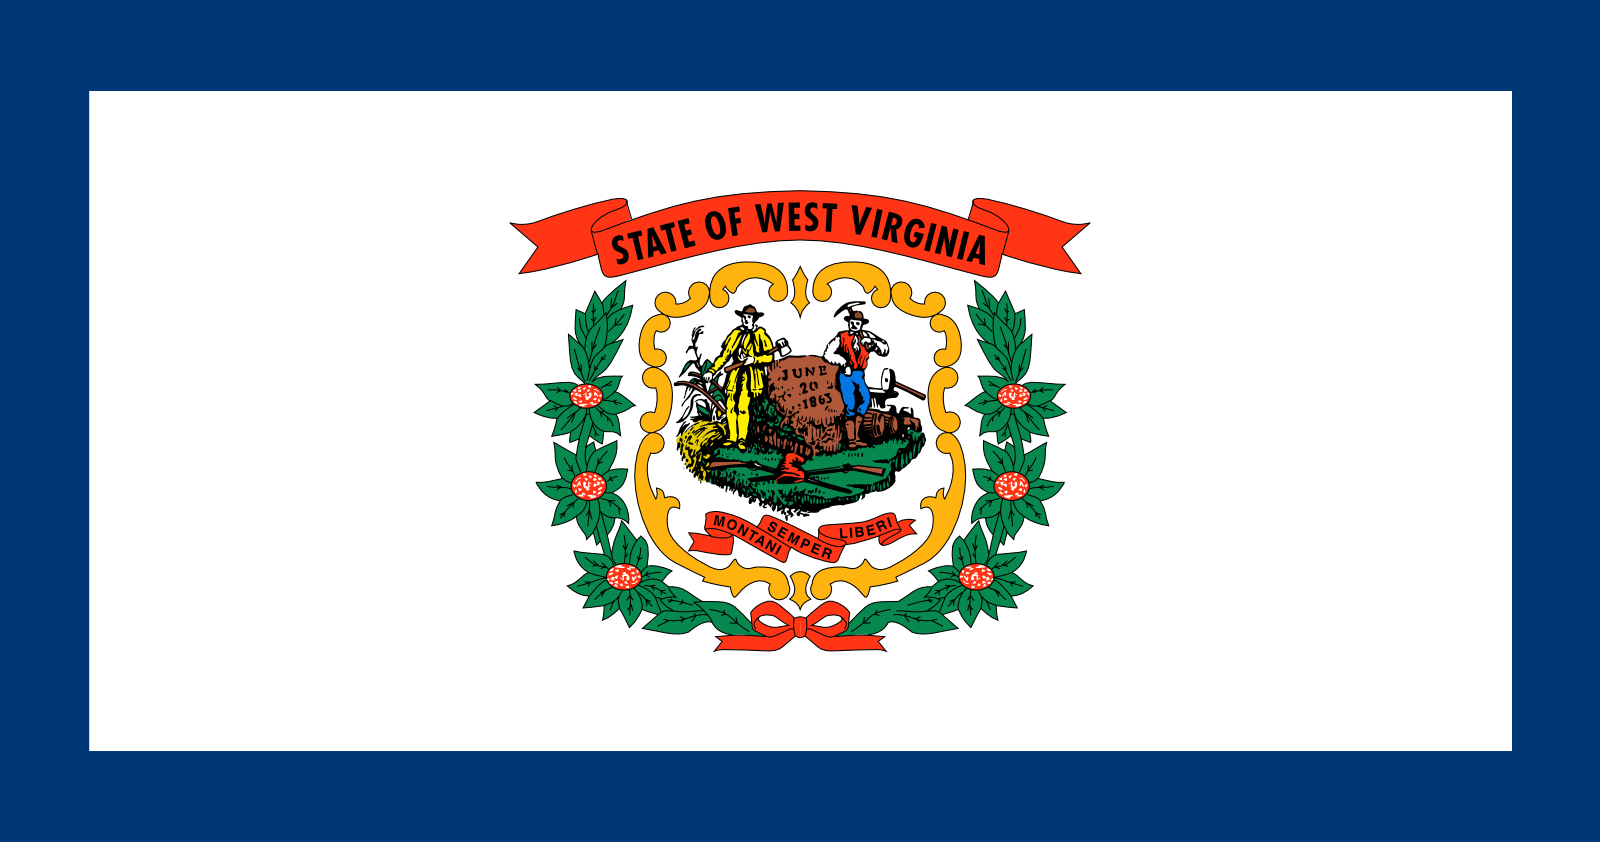 Who is the patron saint of West Virginia?